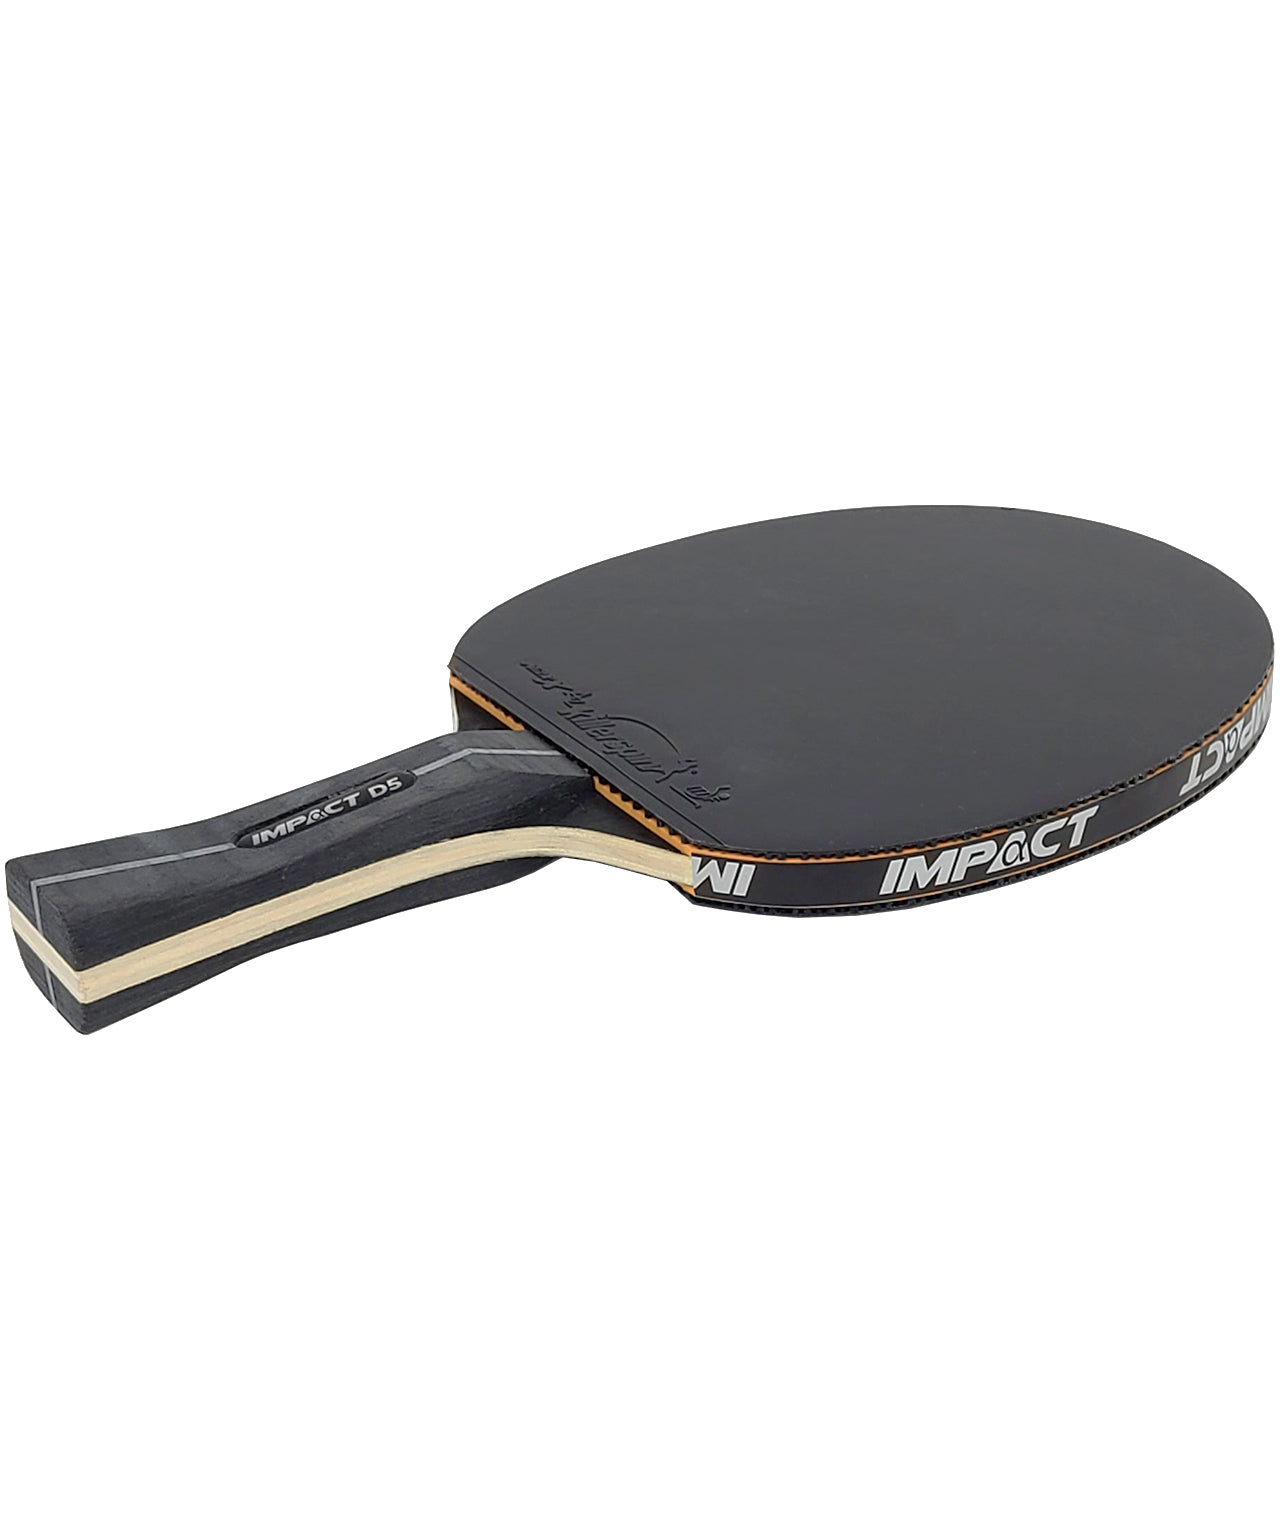 killerspin-ping-pong-paddle-impact-D9-smart-grip-memory-book-racquet